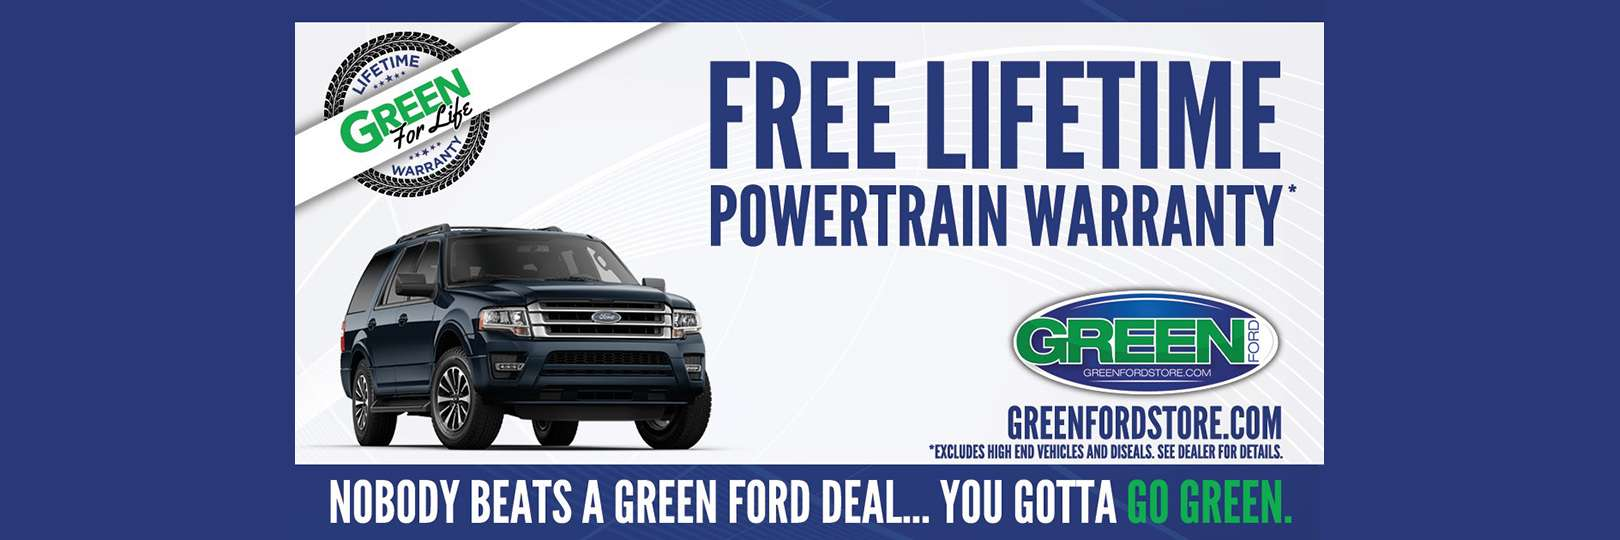 sc 1 th 129 & New and Used Ford dealership in Peoria   Green Ford markmcfarlin.com